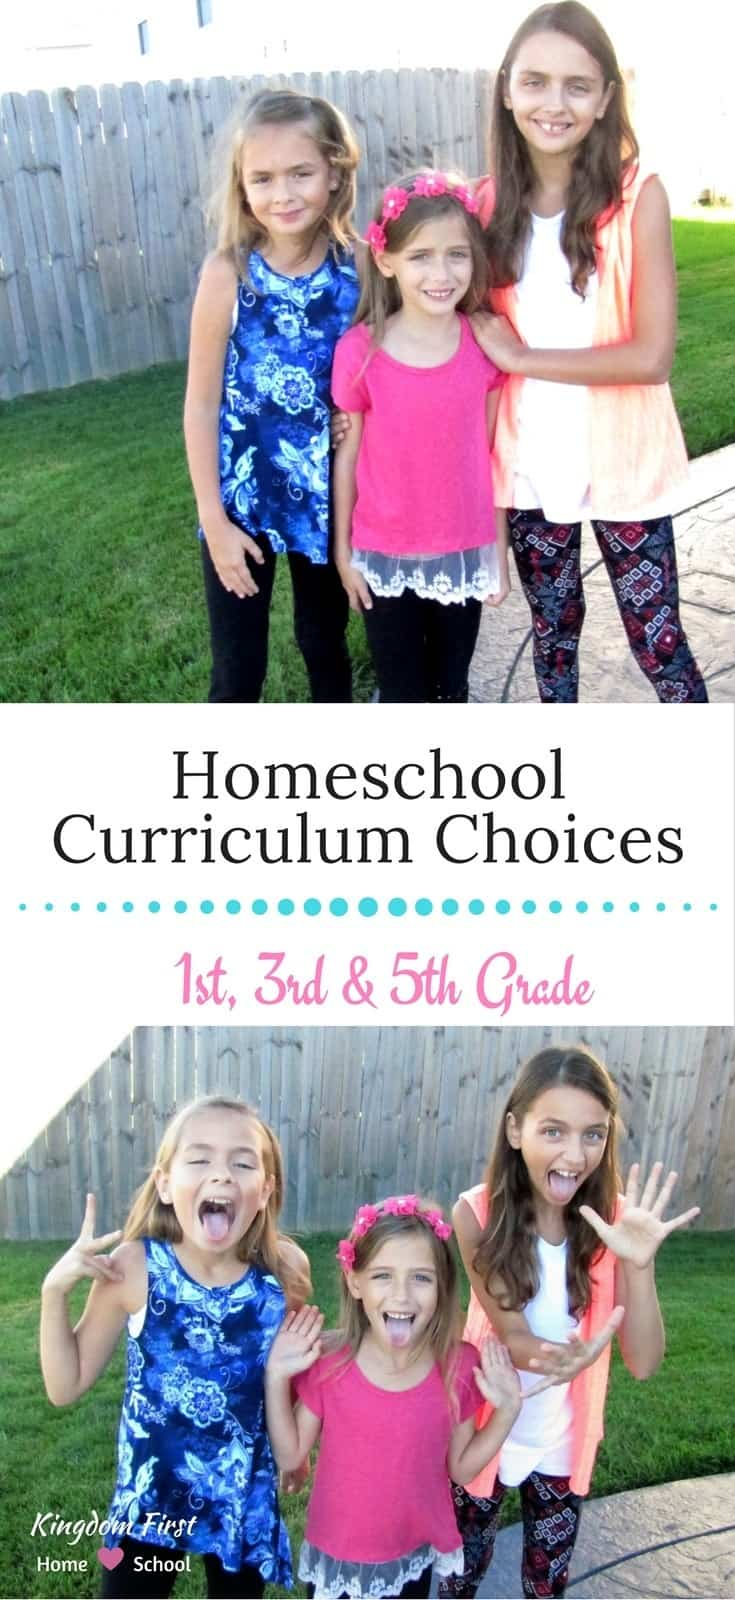 Homeschool curriculum choices for 1st, 3rd and 5th grade.